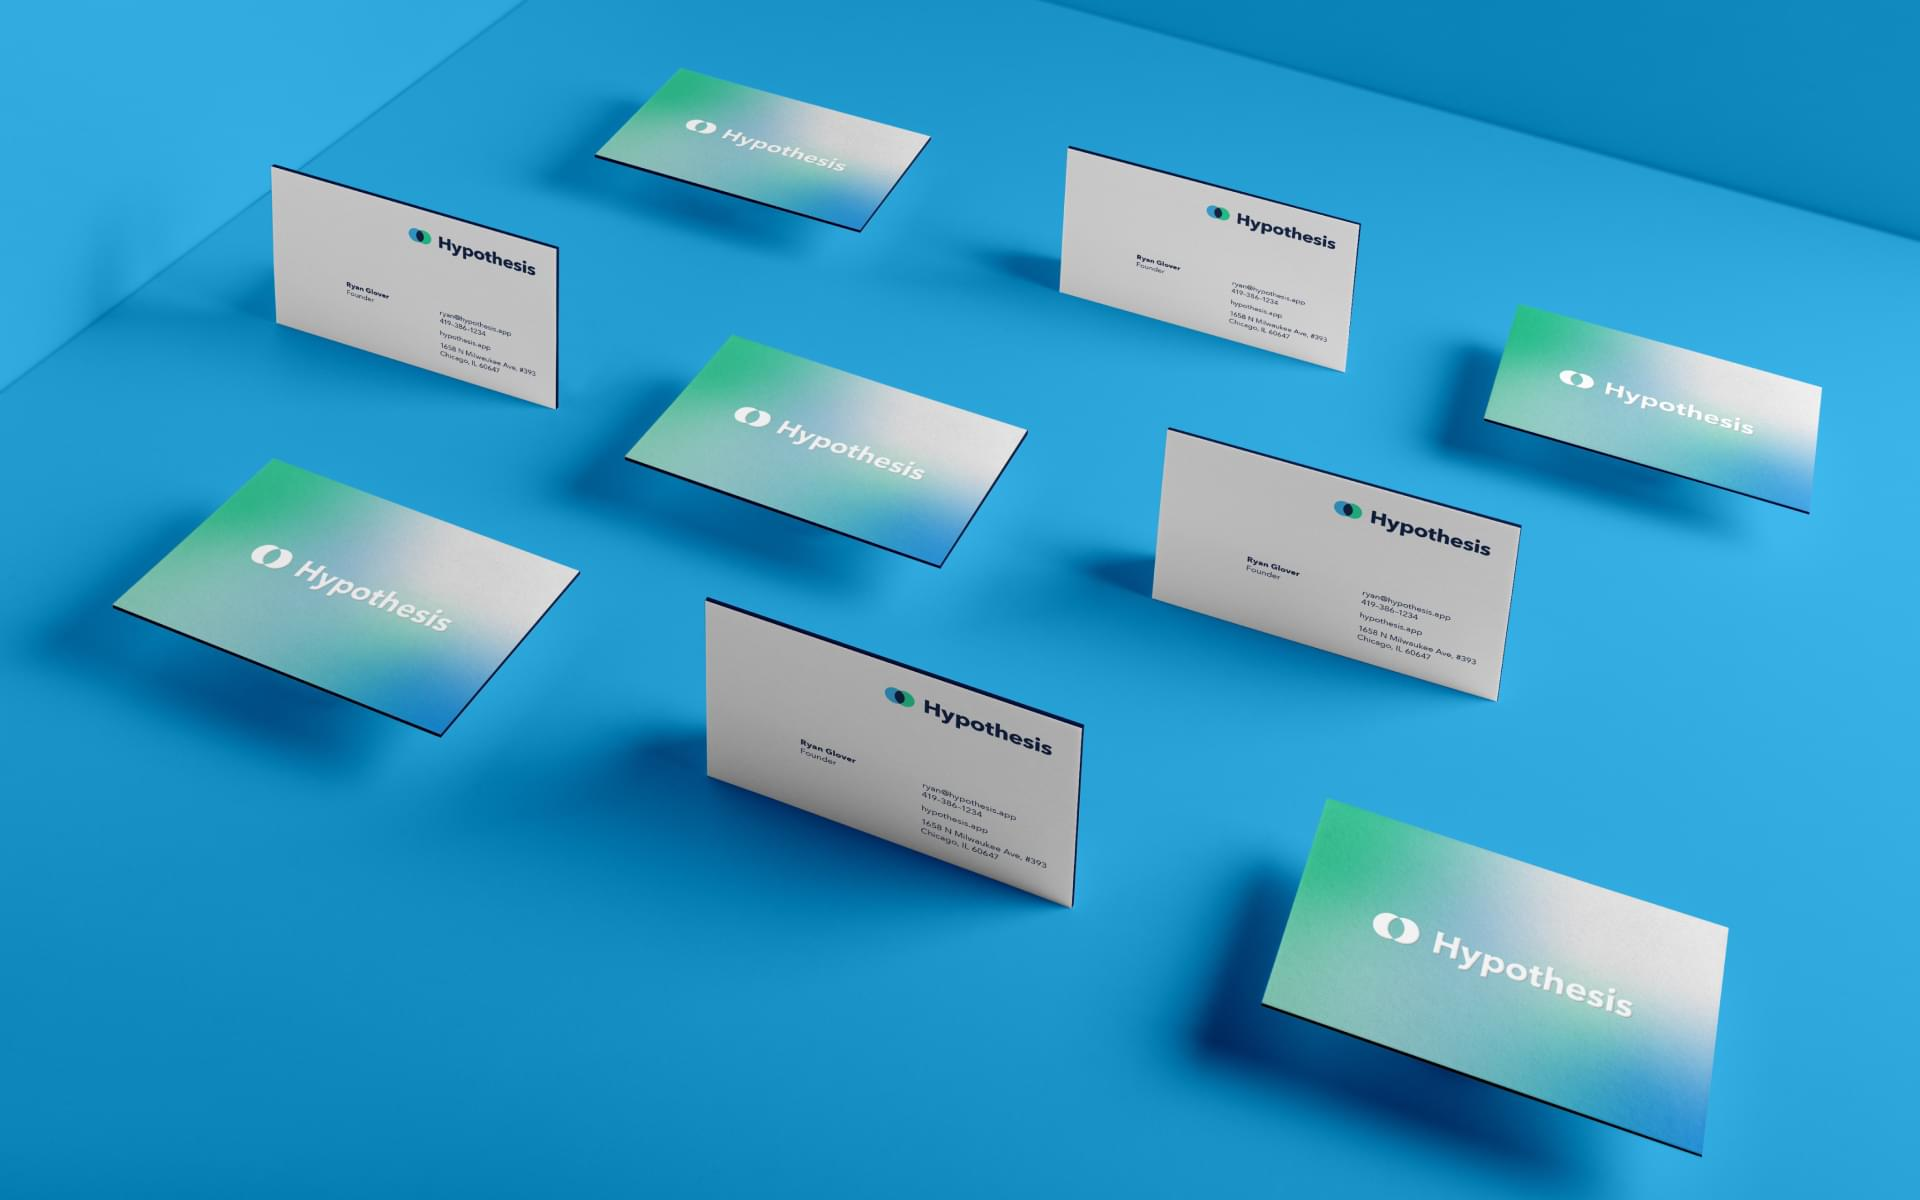 Business card design for SaaS startup Hypothesis